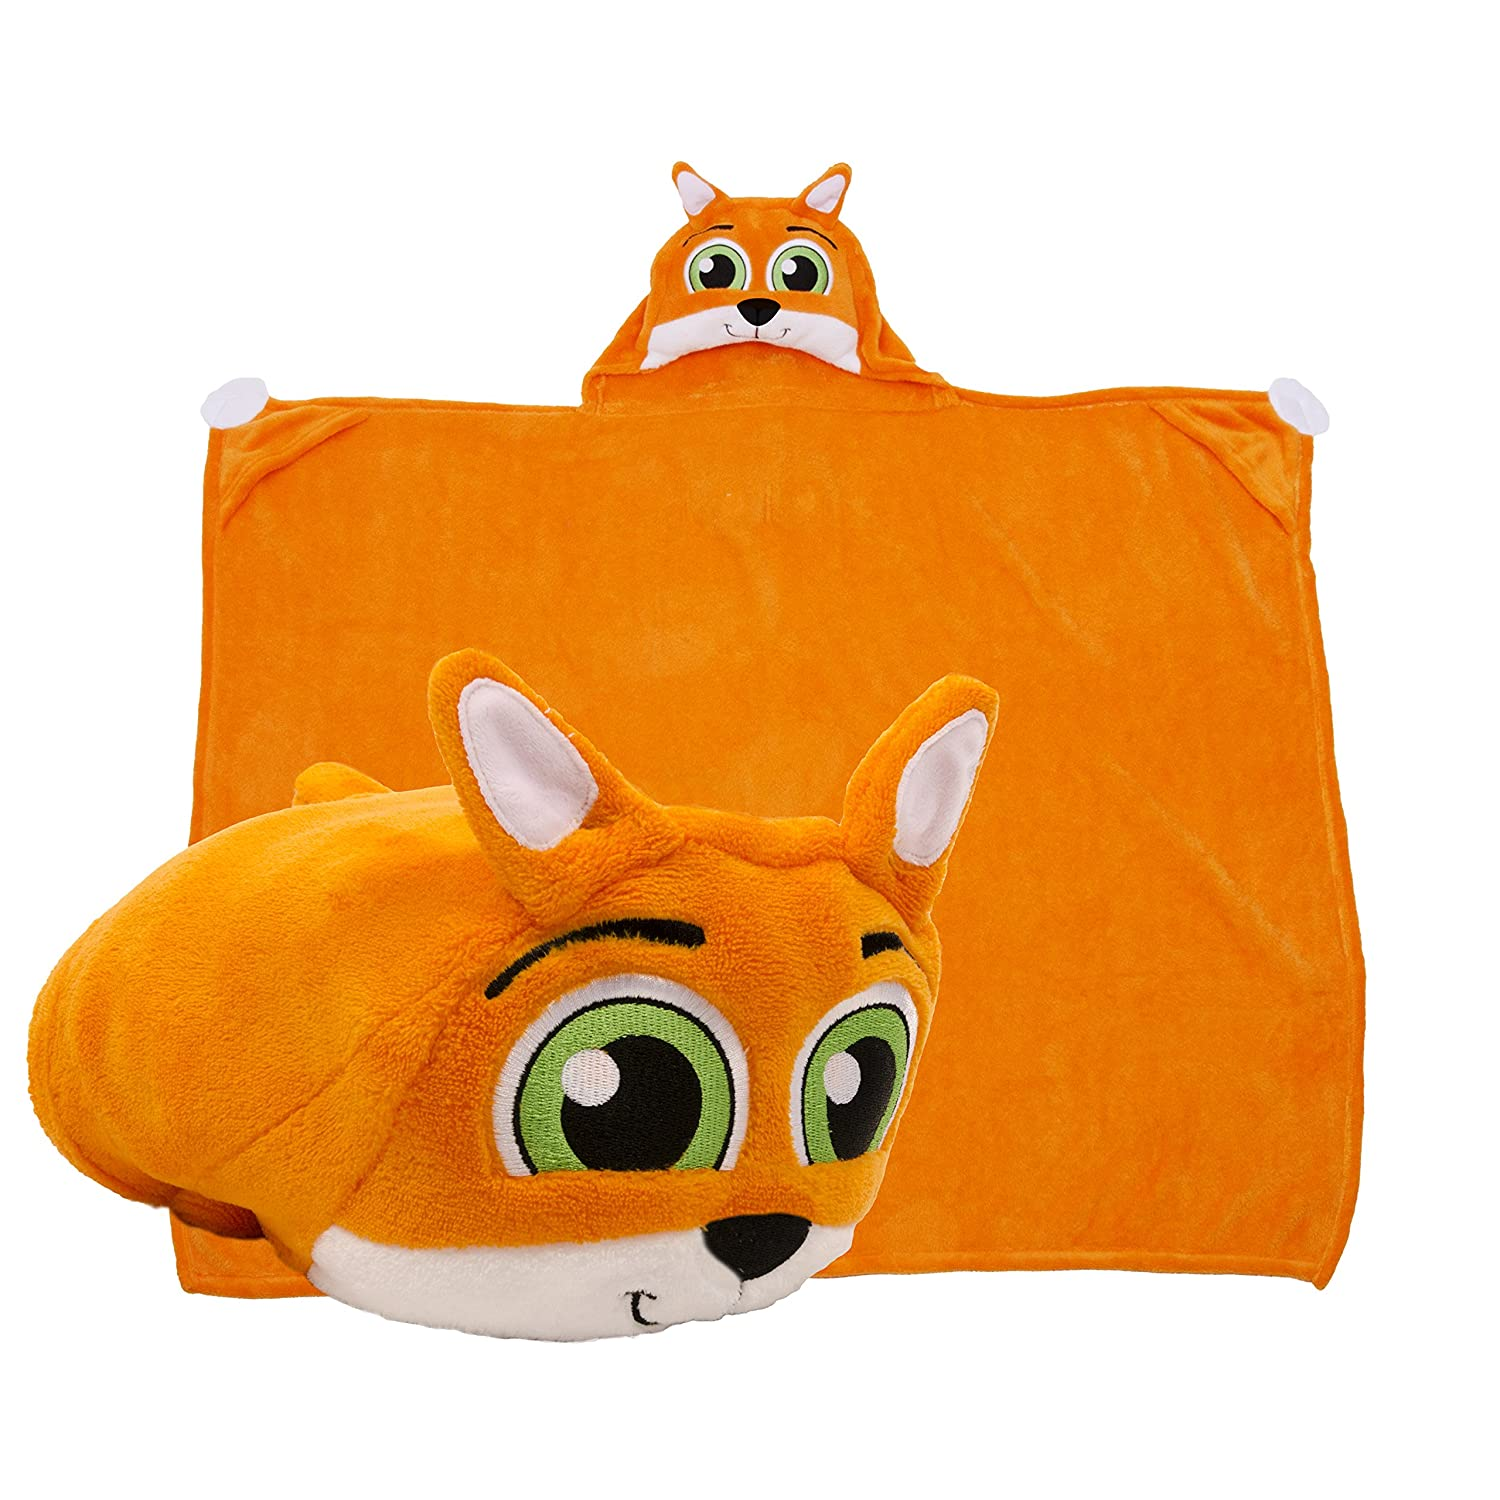 CDM product Comfy Critters Stuffed Animal Blanket Kids Huggable Pillow and Blanket Perfect for Pretend Play, Travel, Nap time. (Fox) big image